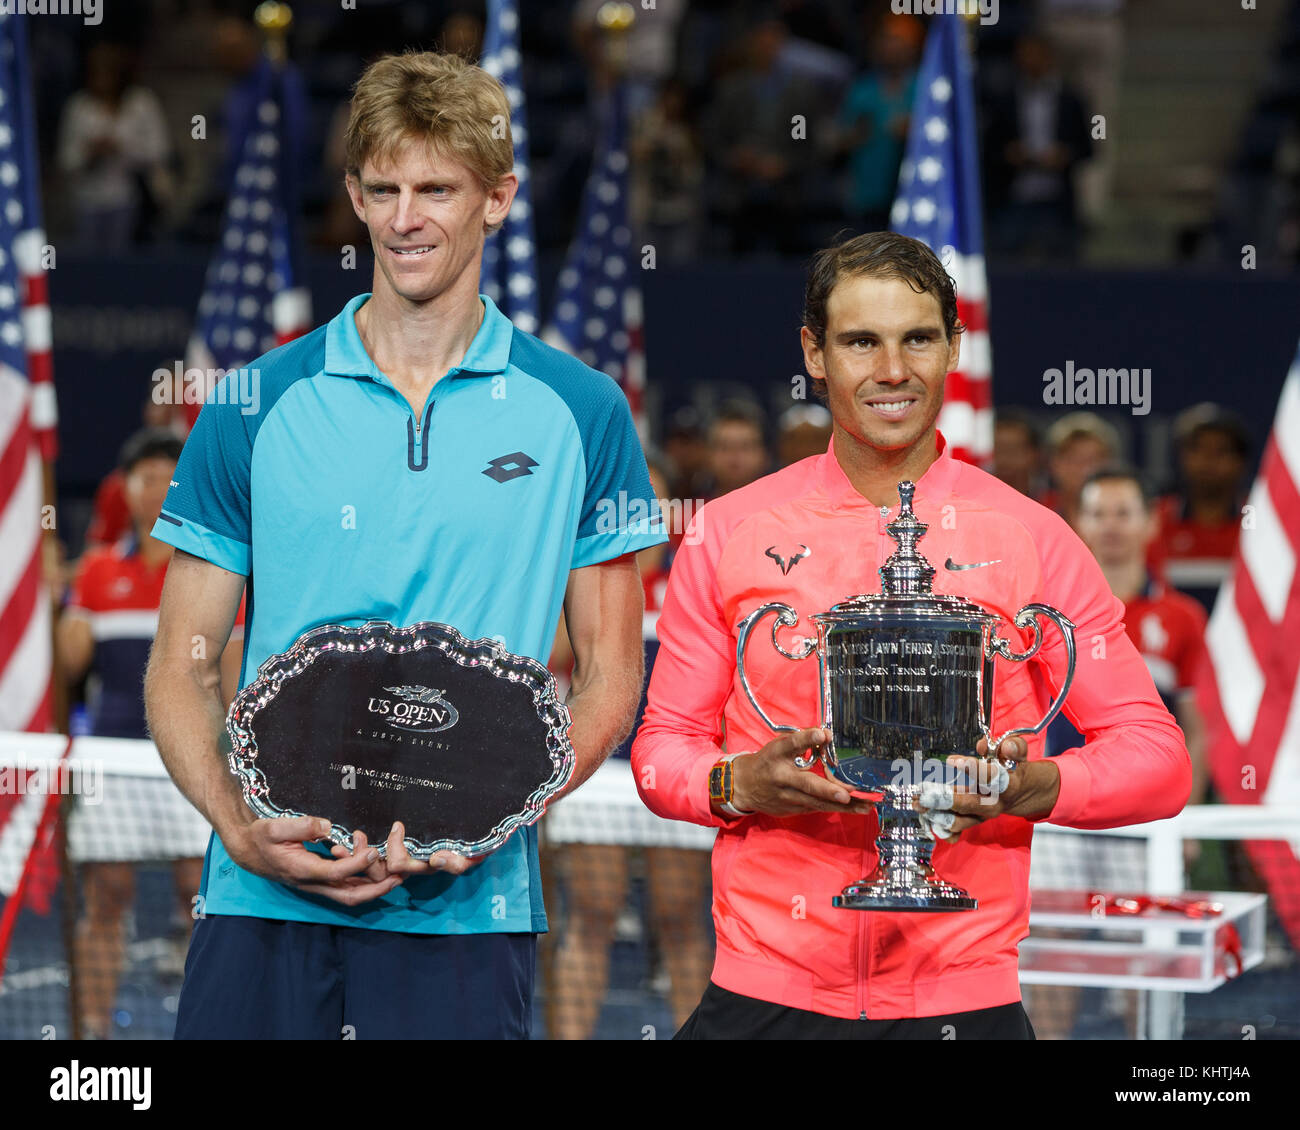 Spanish tennis player Rafael Nadal and runner up Kevin Anderson holding their  US Open 2017 trophies ,New York City, - Stock Image